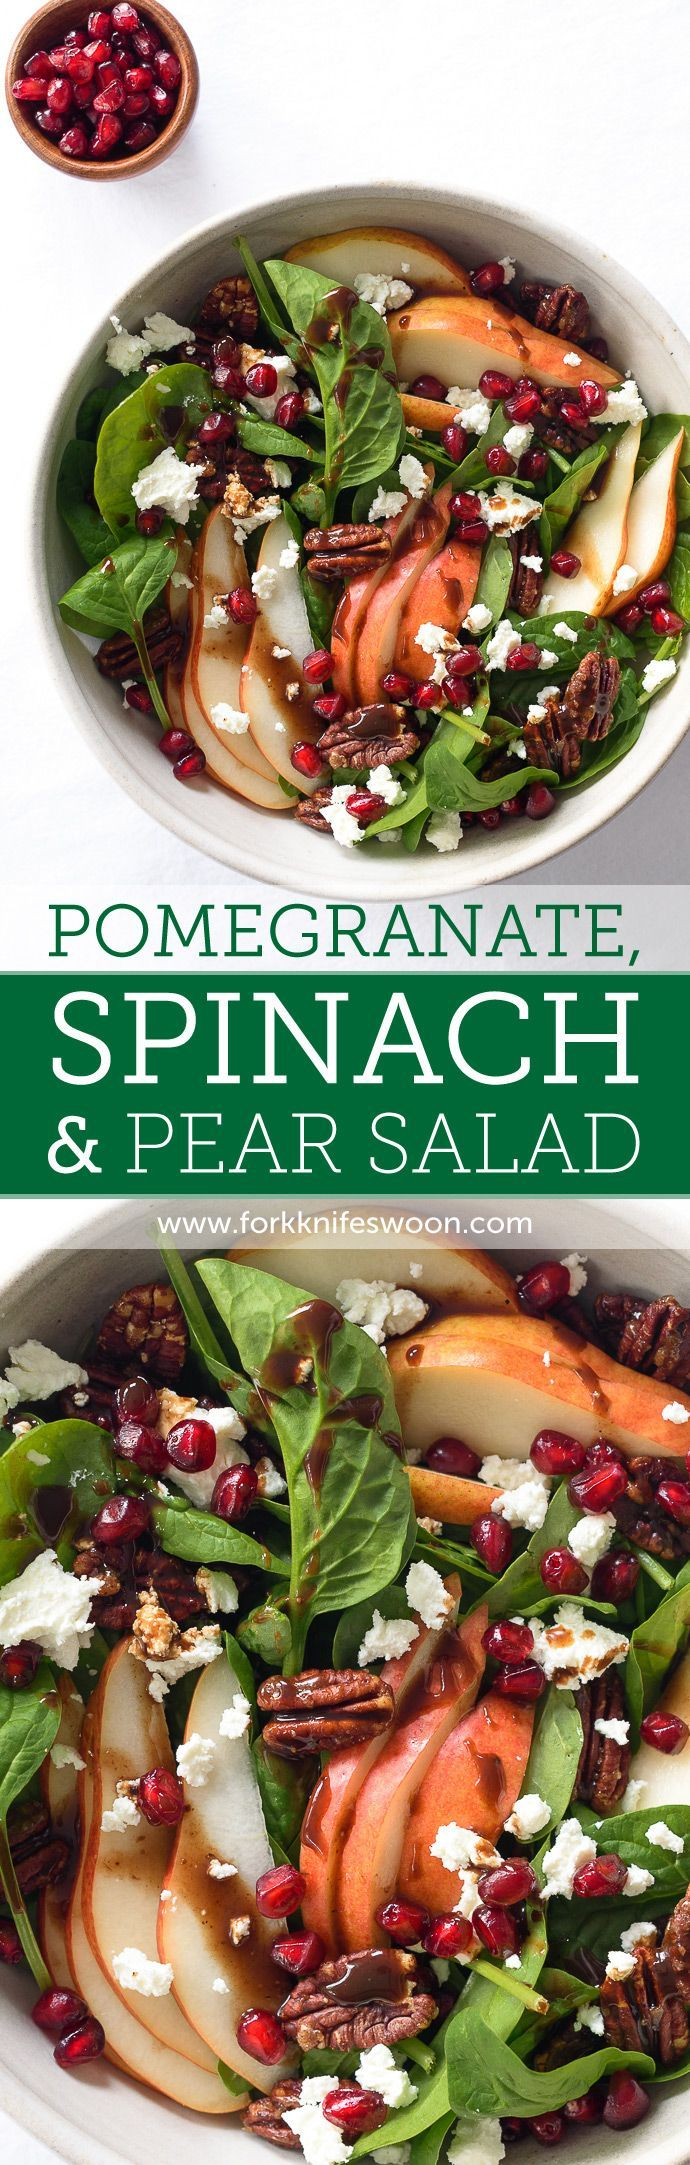 A healthy and fresh Spinach and Pear Salad with Goat Cheese, Pomegranate, and Candied Pecans - this is a colorful, crowd-pleasing salad that is perfect for the holidays! via forkknifeswoon.com